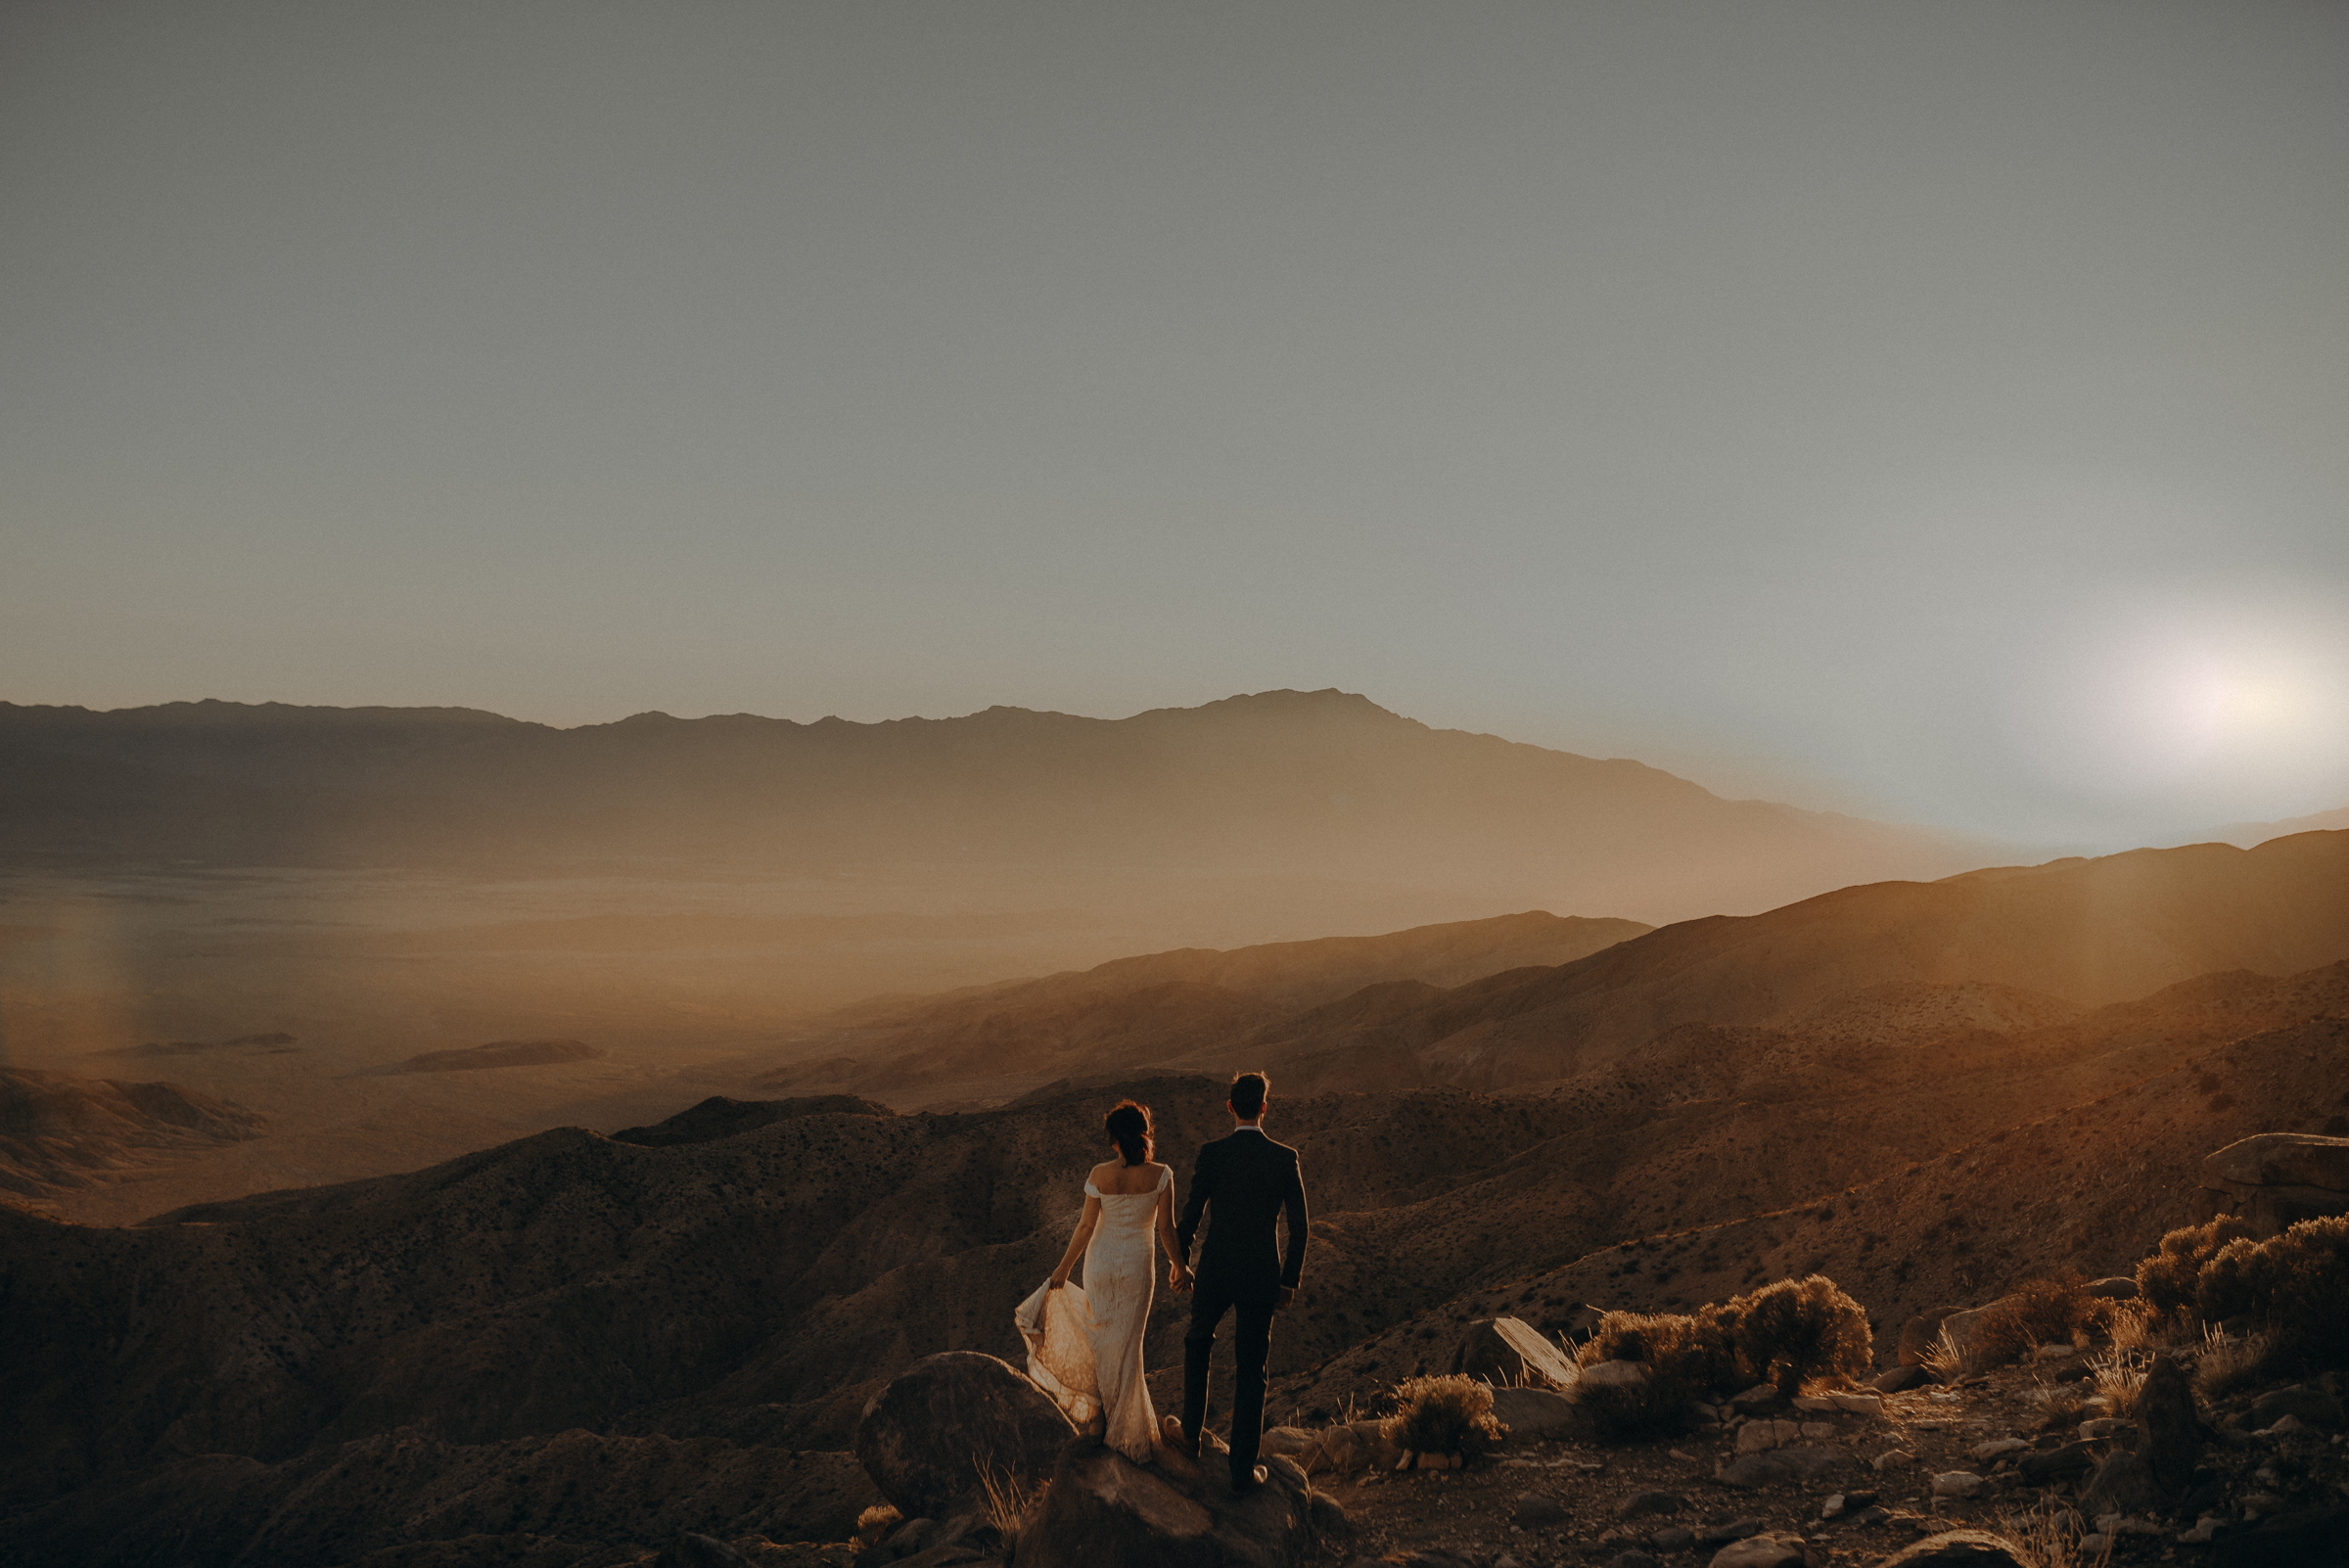 Joshua Tree Elopement - Los Angeles Wedding Photographers - IsaiahAndTaylor.com-098.jpg